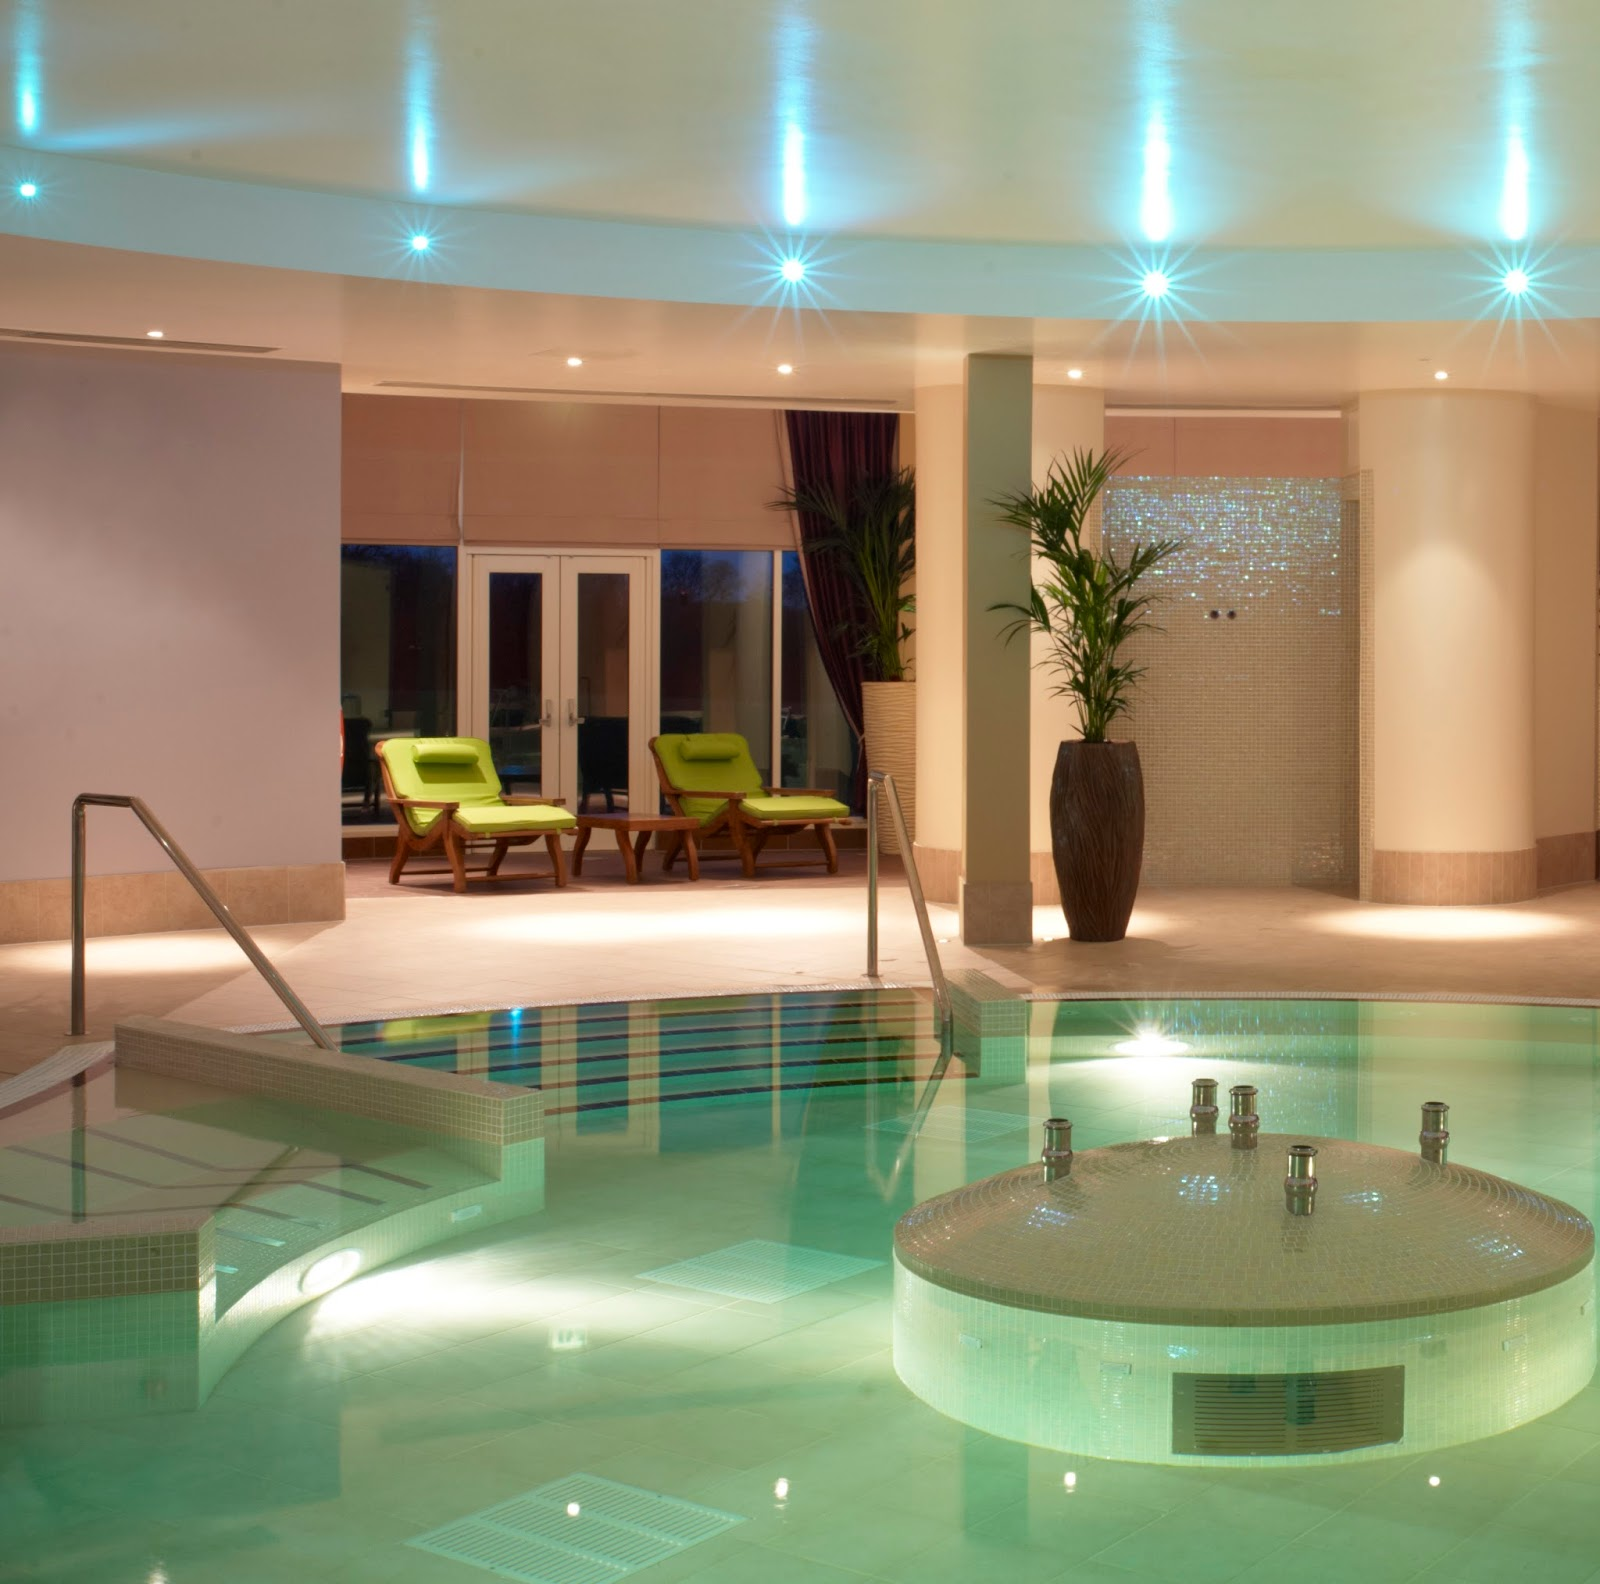 Rockliffe Hall midweek spa break review - hydro pool